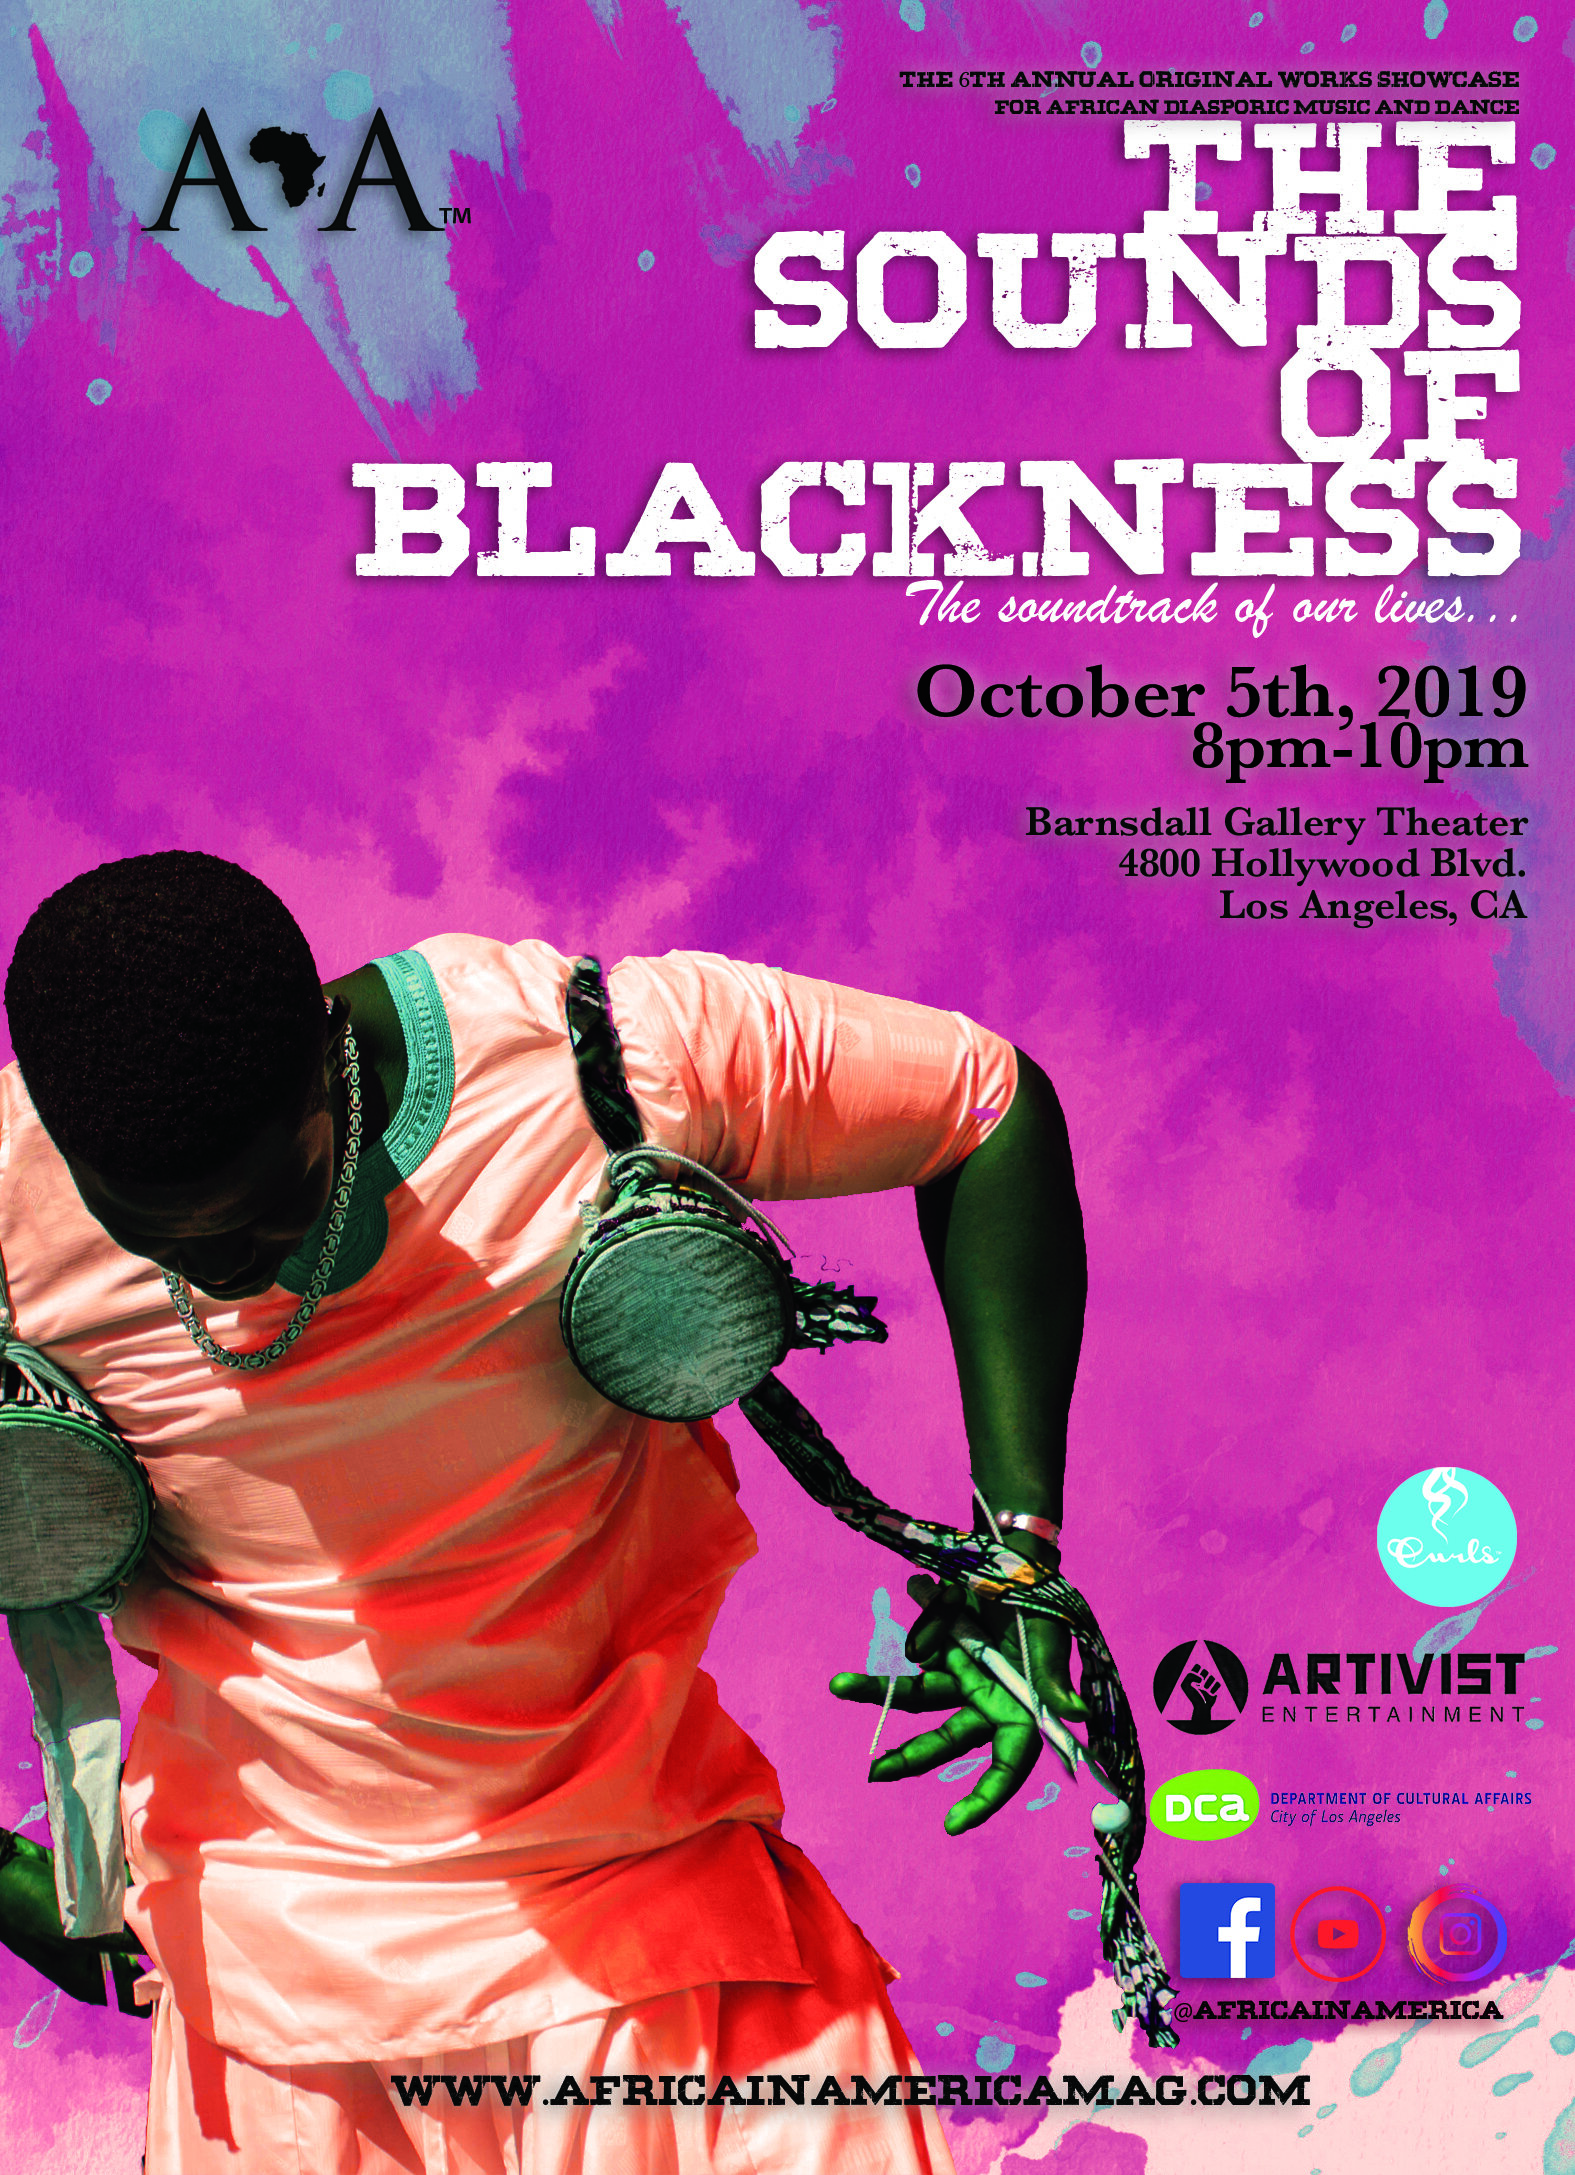 """October 5th:""""The Sounds of Blackness""""6th Annual Original Works Showcase - 8 PM-10 PMLocation: Barnsdall Gallery Theater4800 Hollywood Blvd.Los Angeles, CAAfrica In America Presents its 6th Annual Original Works Showcase for African Diasporic Music and Dance entitled,"""